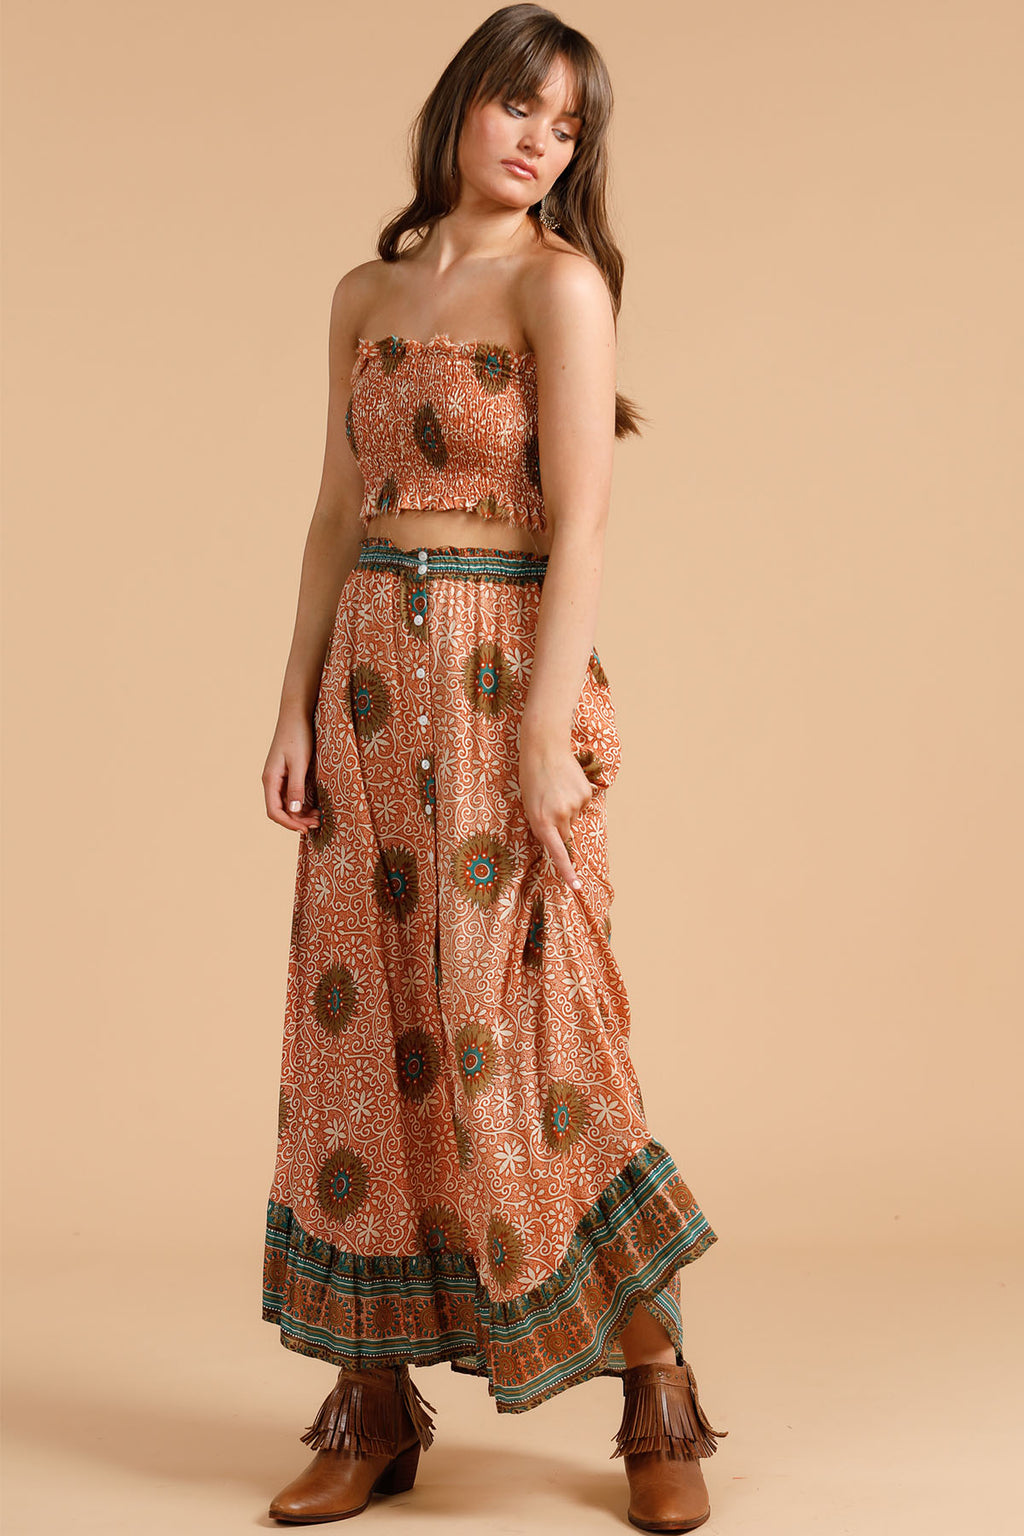 Road Trip Skirt - Cactus Flower - The Bohemian Corner